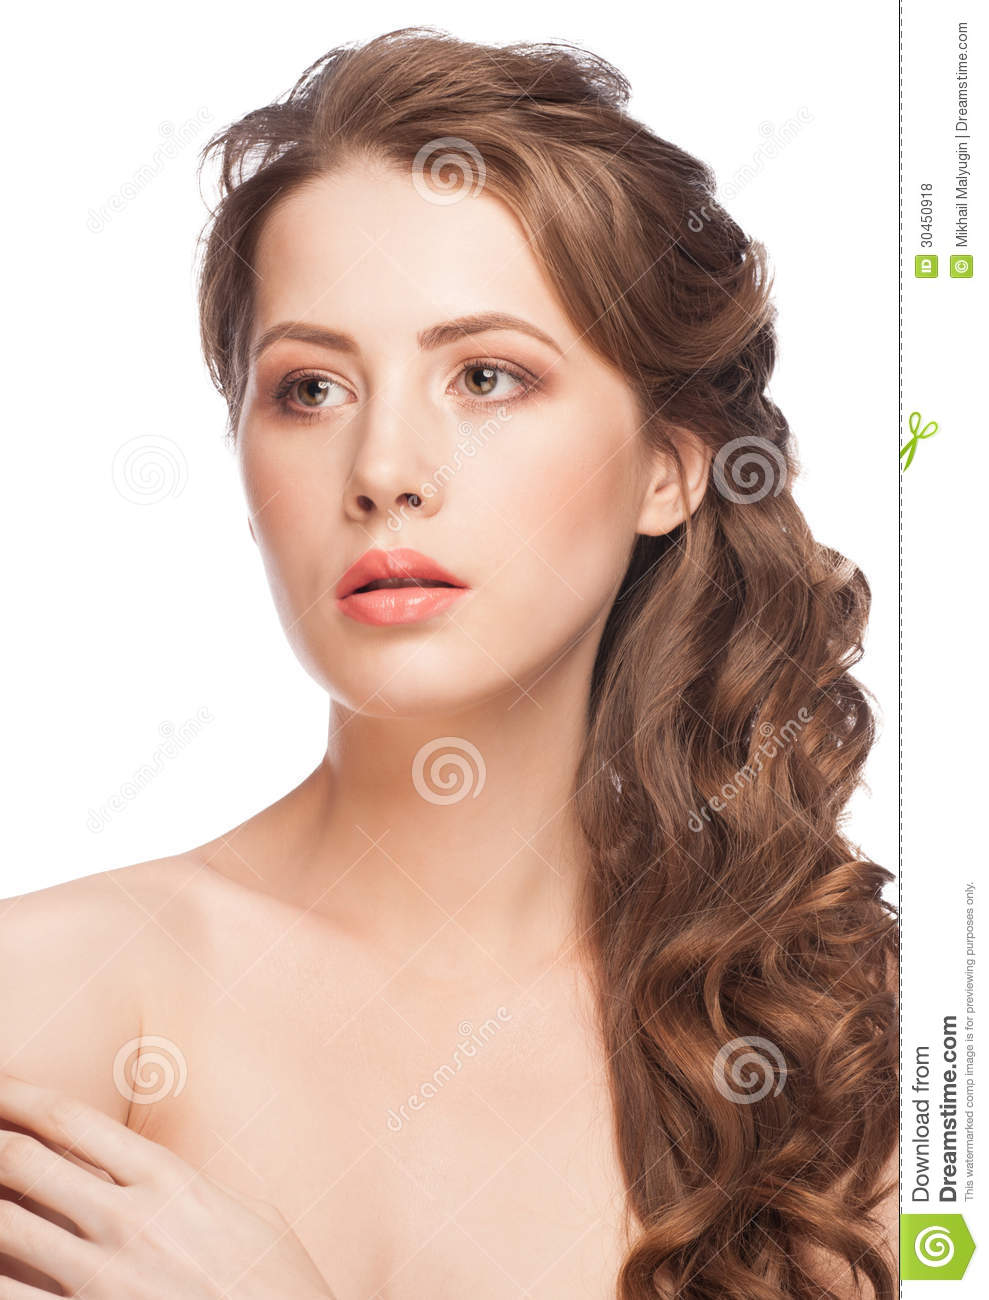 woman with beautiful bridal hairstyle stock photo - image of